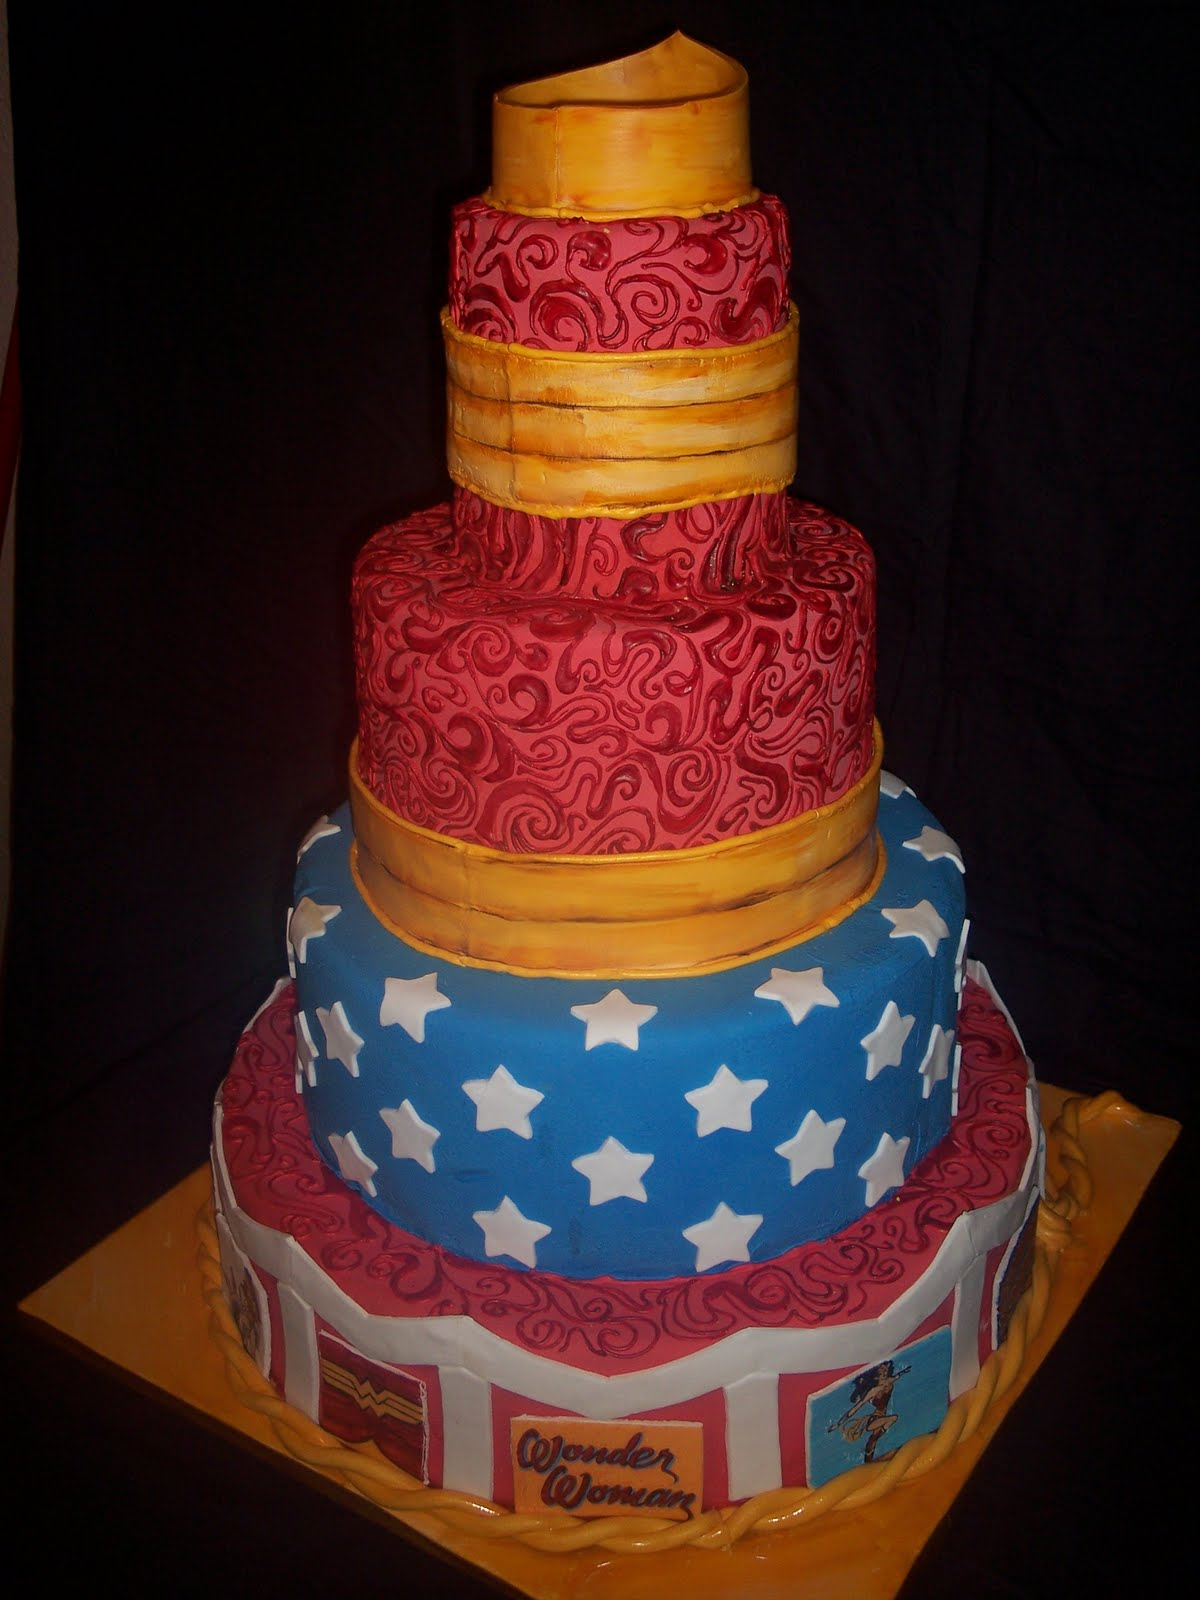 Cake Decoration Competition : Adventures in Caking: My First Cake Decorating Competition